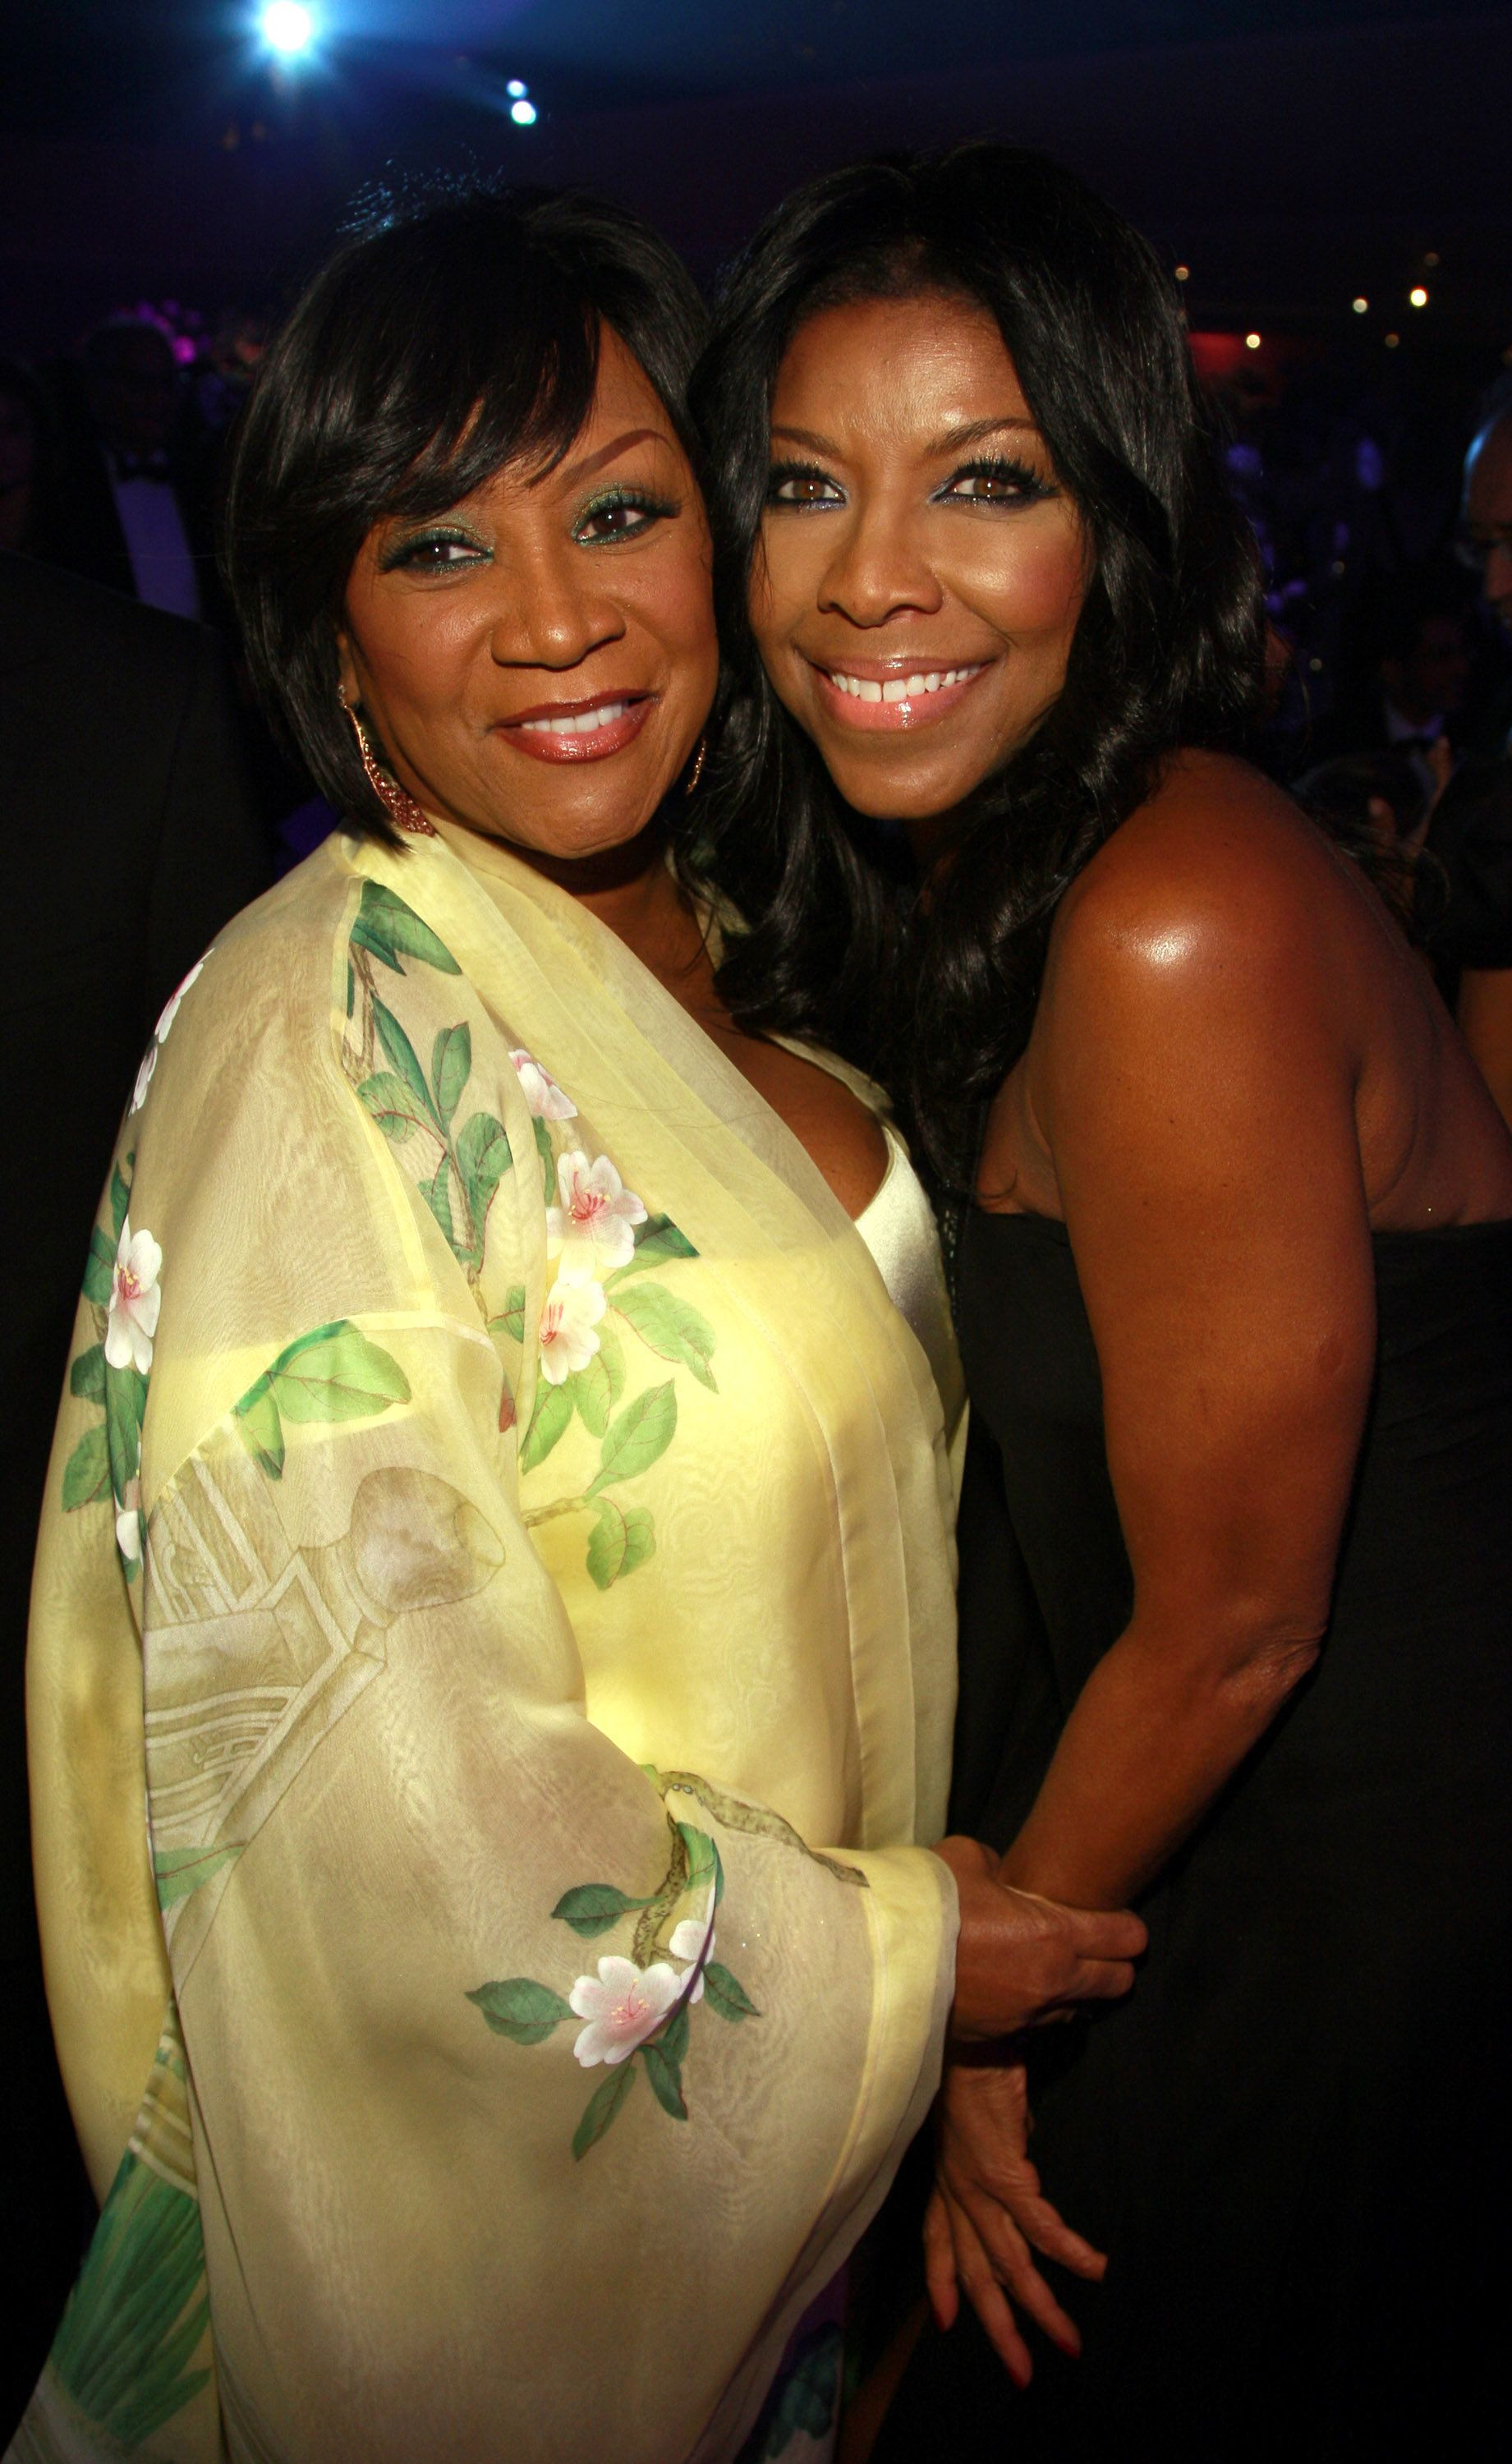 NEW YORK - OCTOBER 29:  Singers Patti LaBelle and Natalie Cole attend the 2007 Angel Ball presented by the G&P Foundation at the Marriott Marquis on October 29, 2007 in New York City.  (Photo by Dimitrios Kambouris/WireImage)